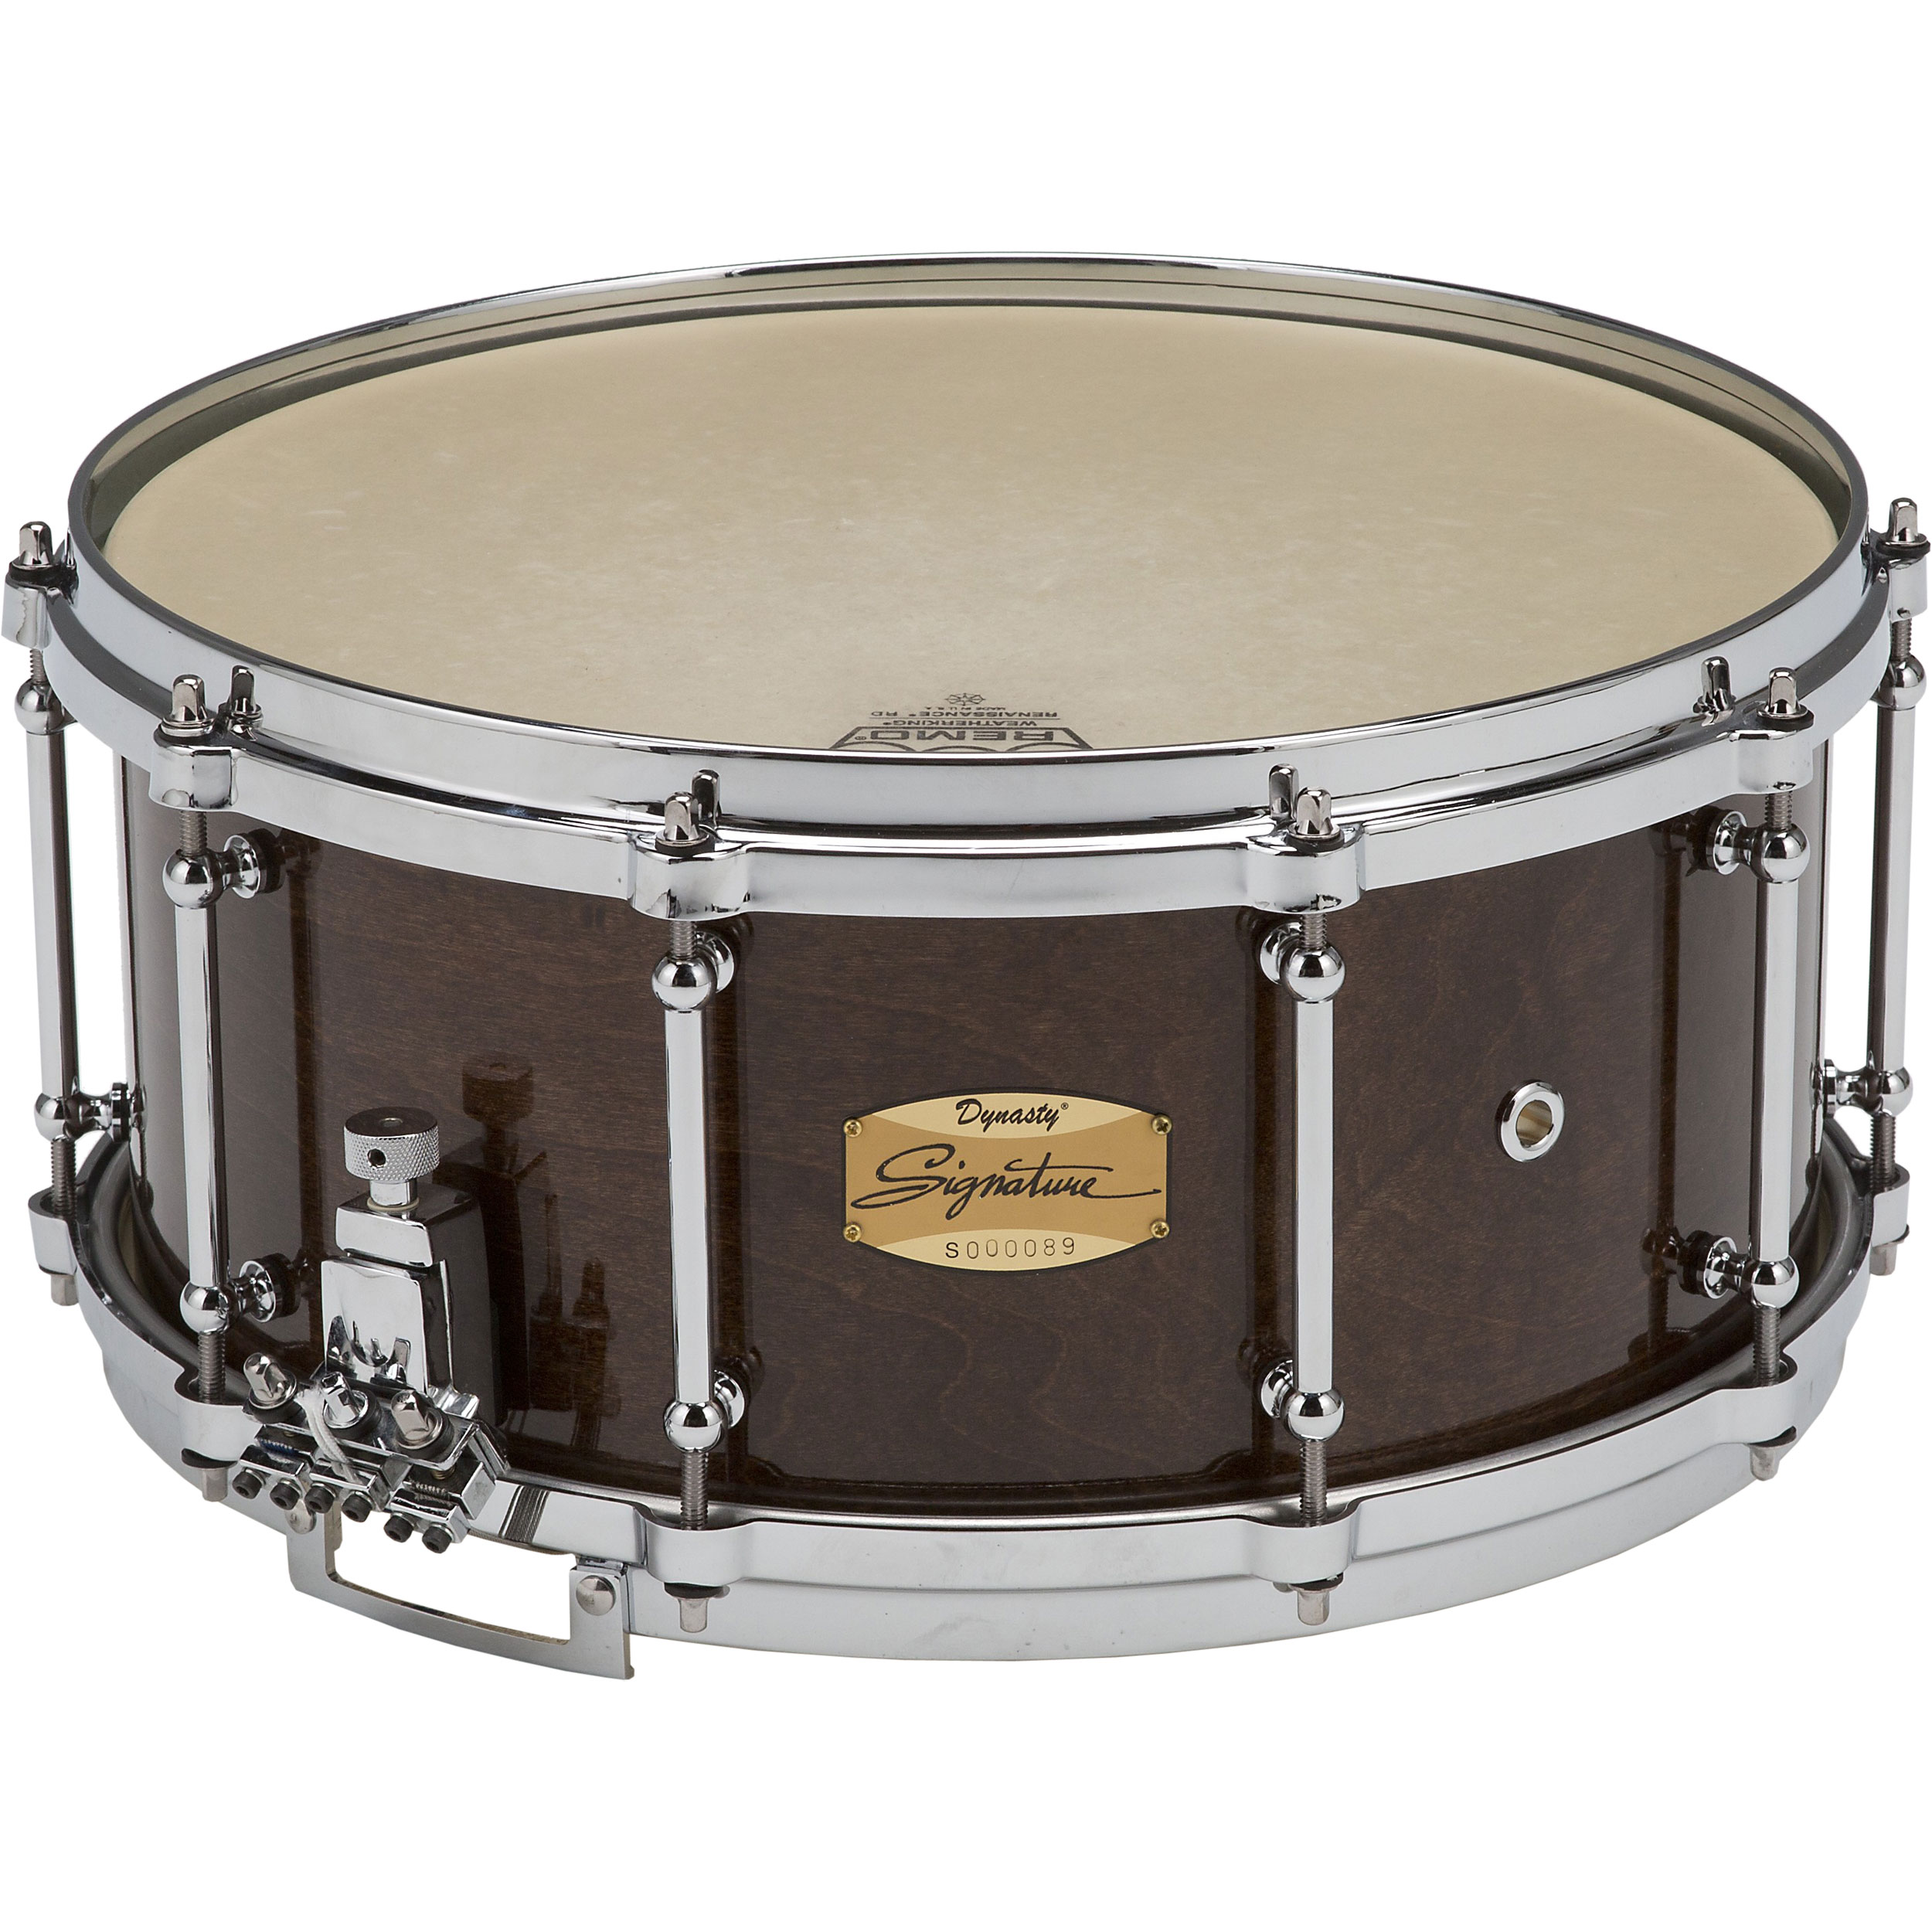 "Dynasty 14"" x 6.5"" Signature Professional Series Concert Snare Drum"